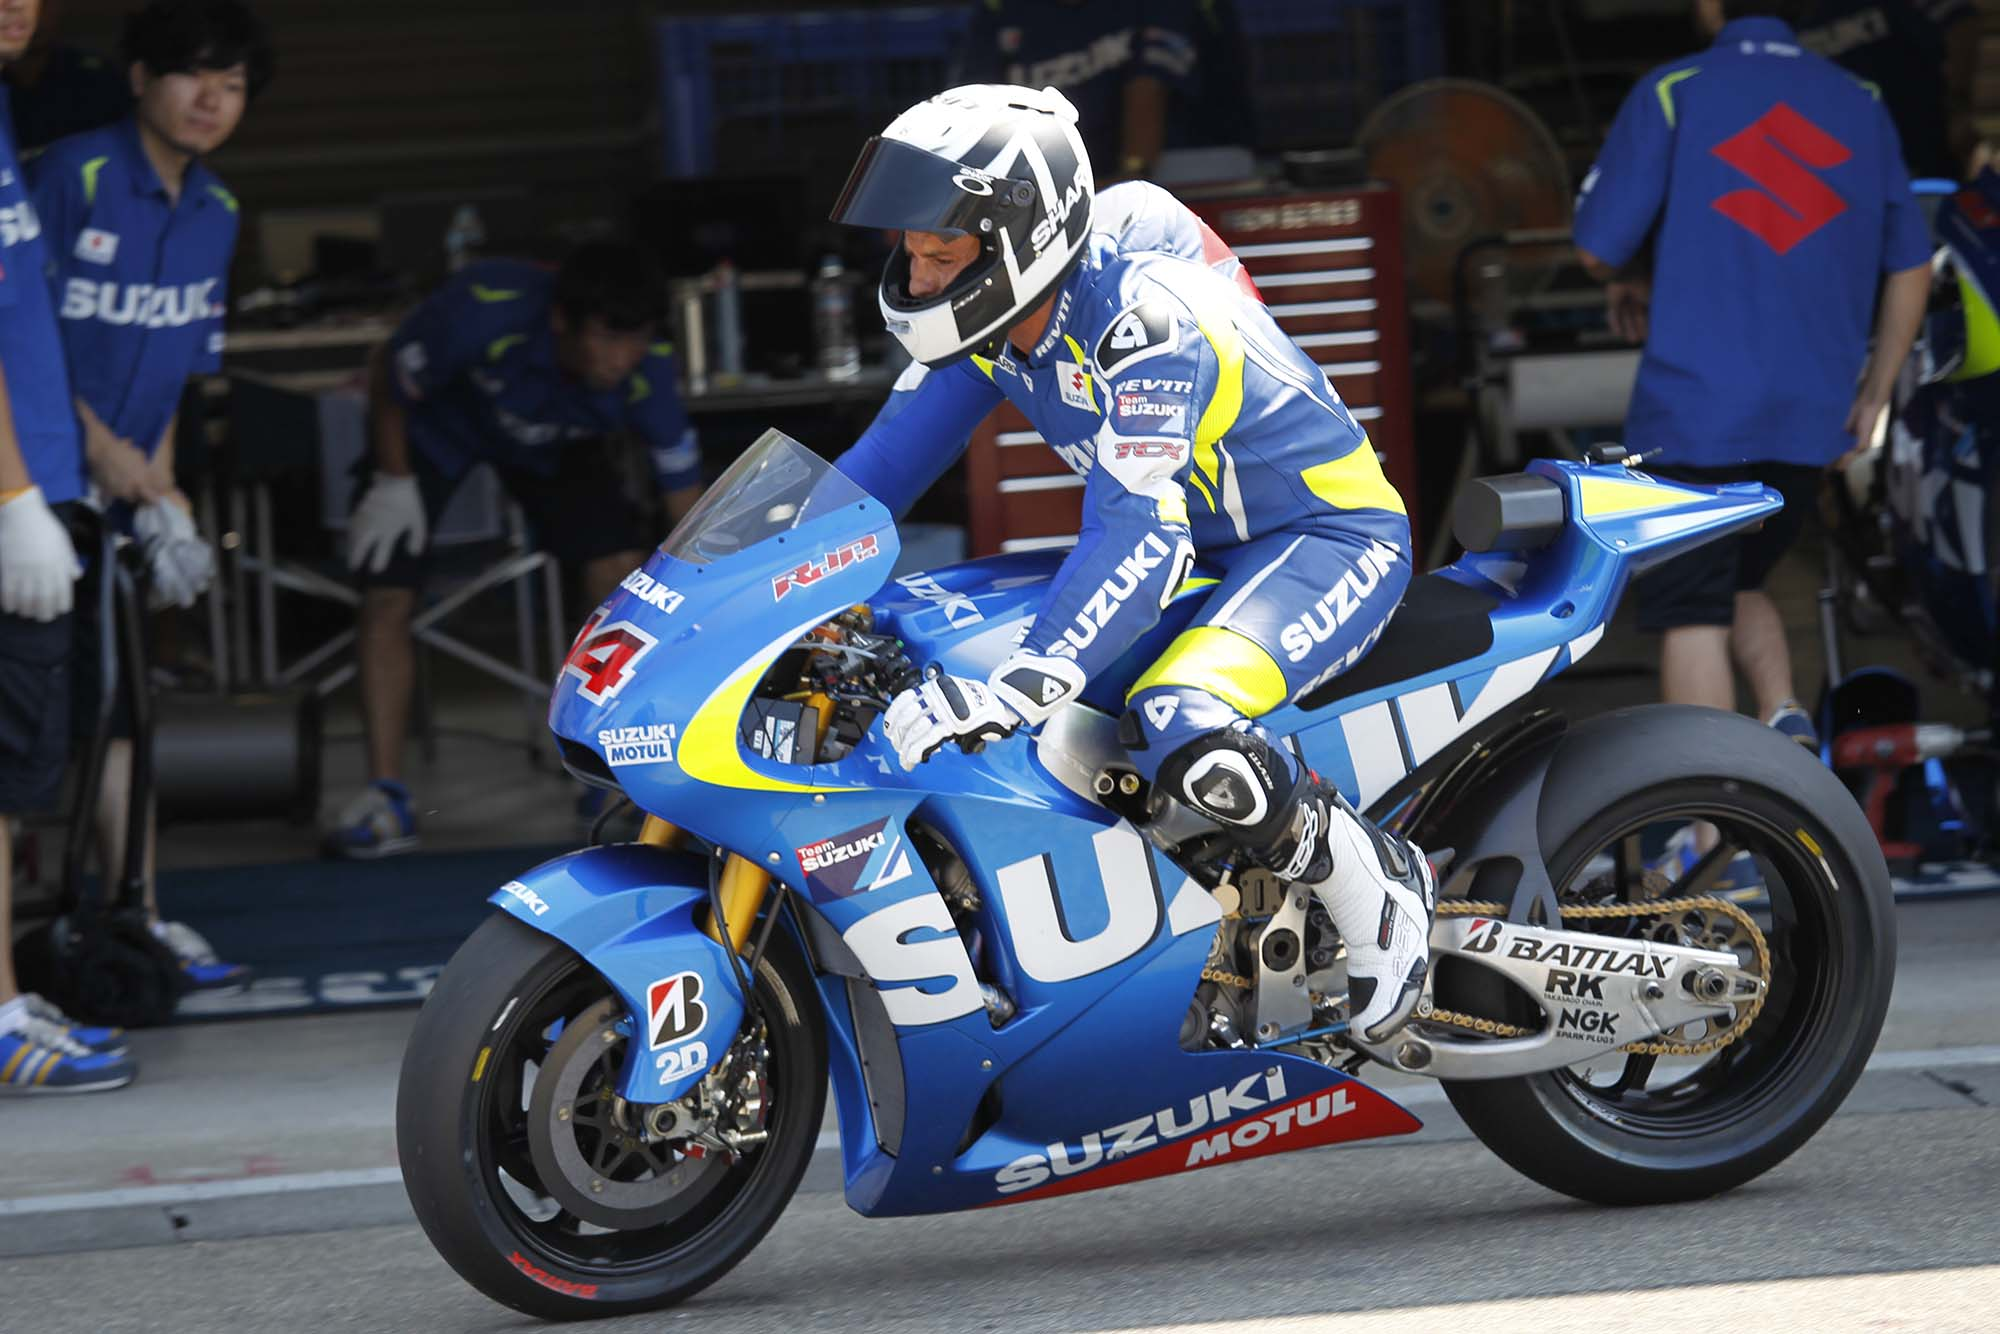 Photos: Suzuki MotoGP Team Testing at Motegi with RdP - Asphalt & Rubber